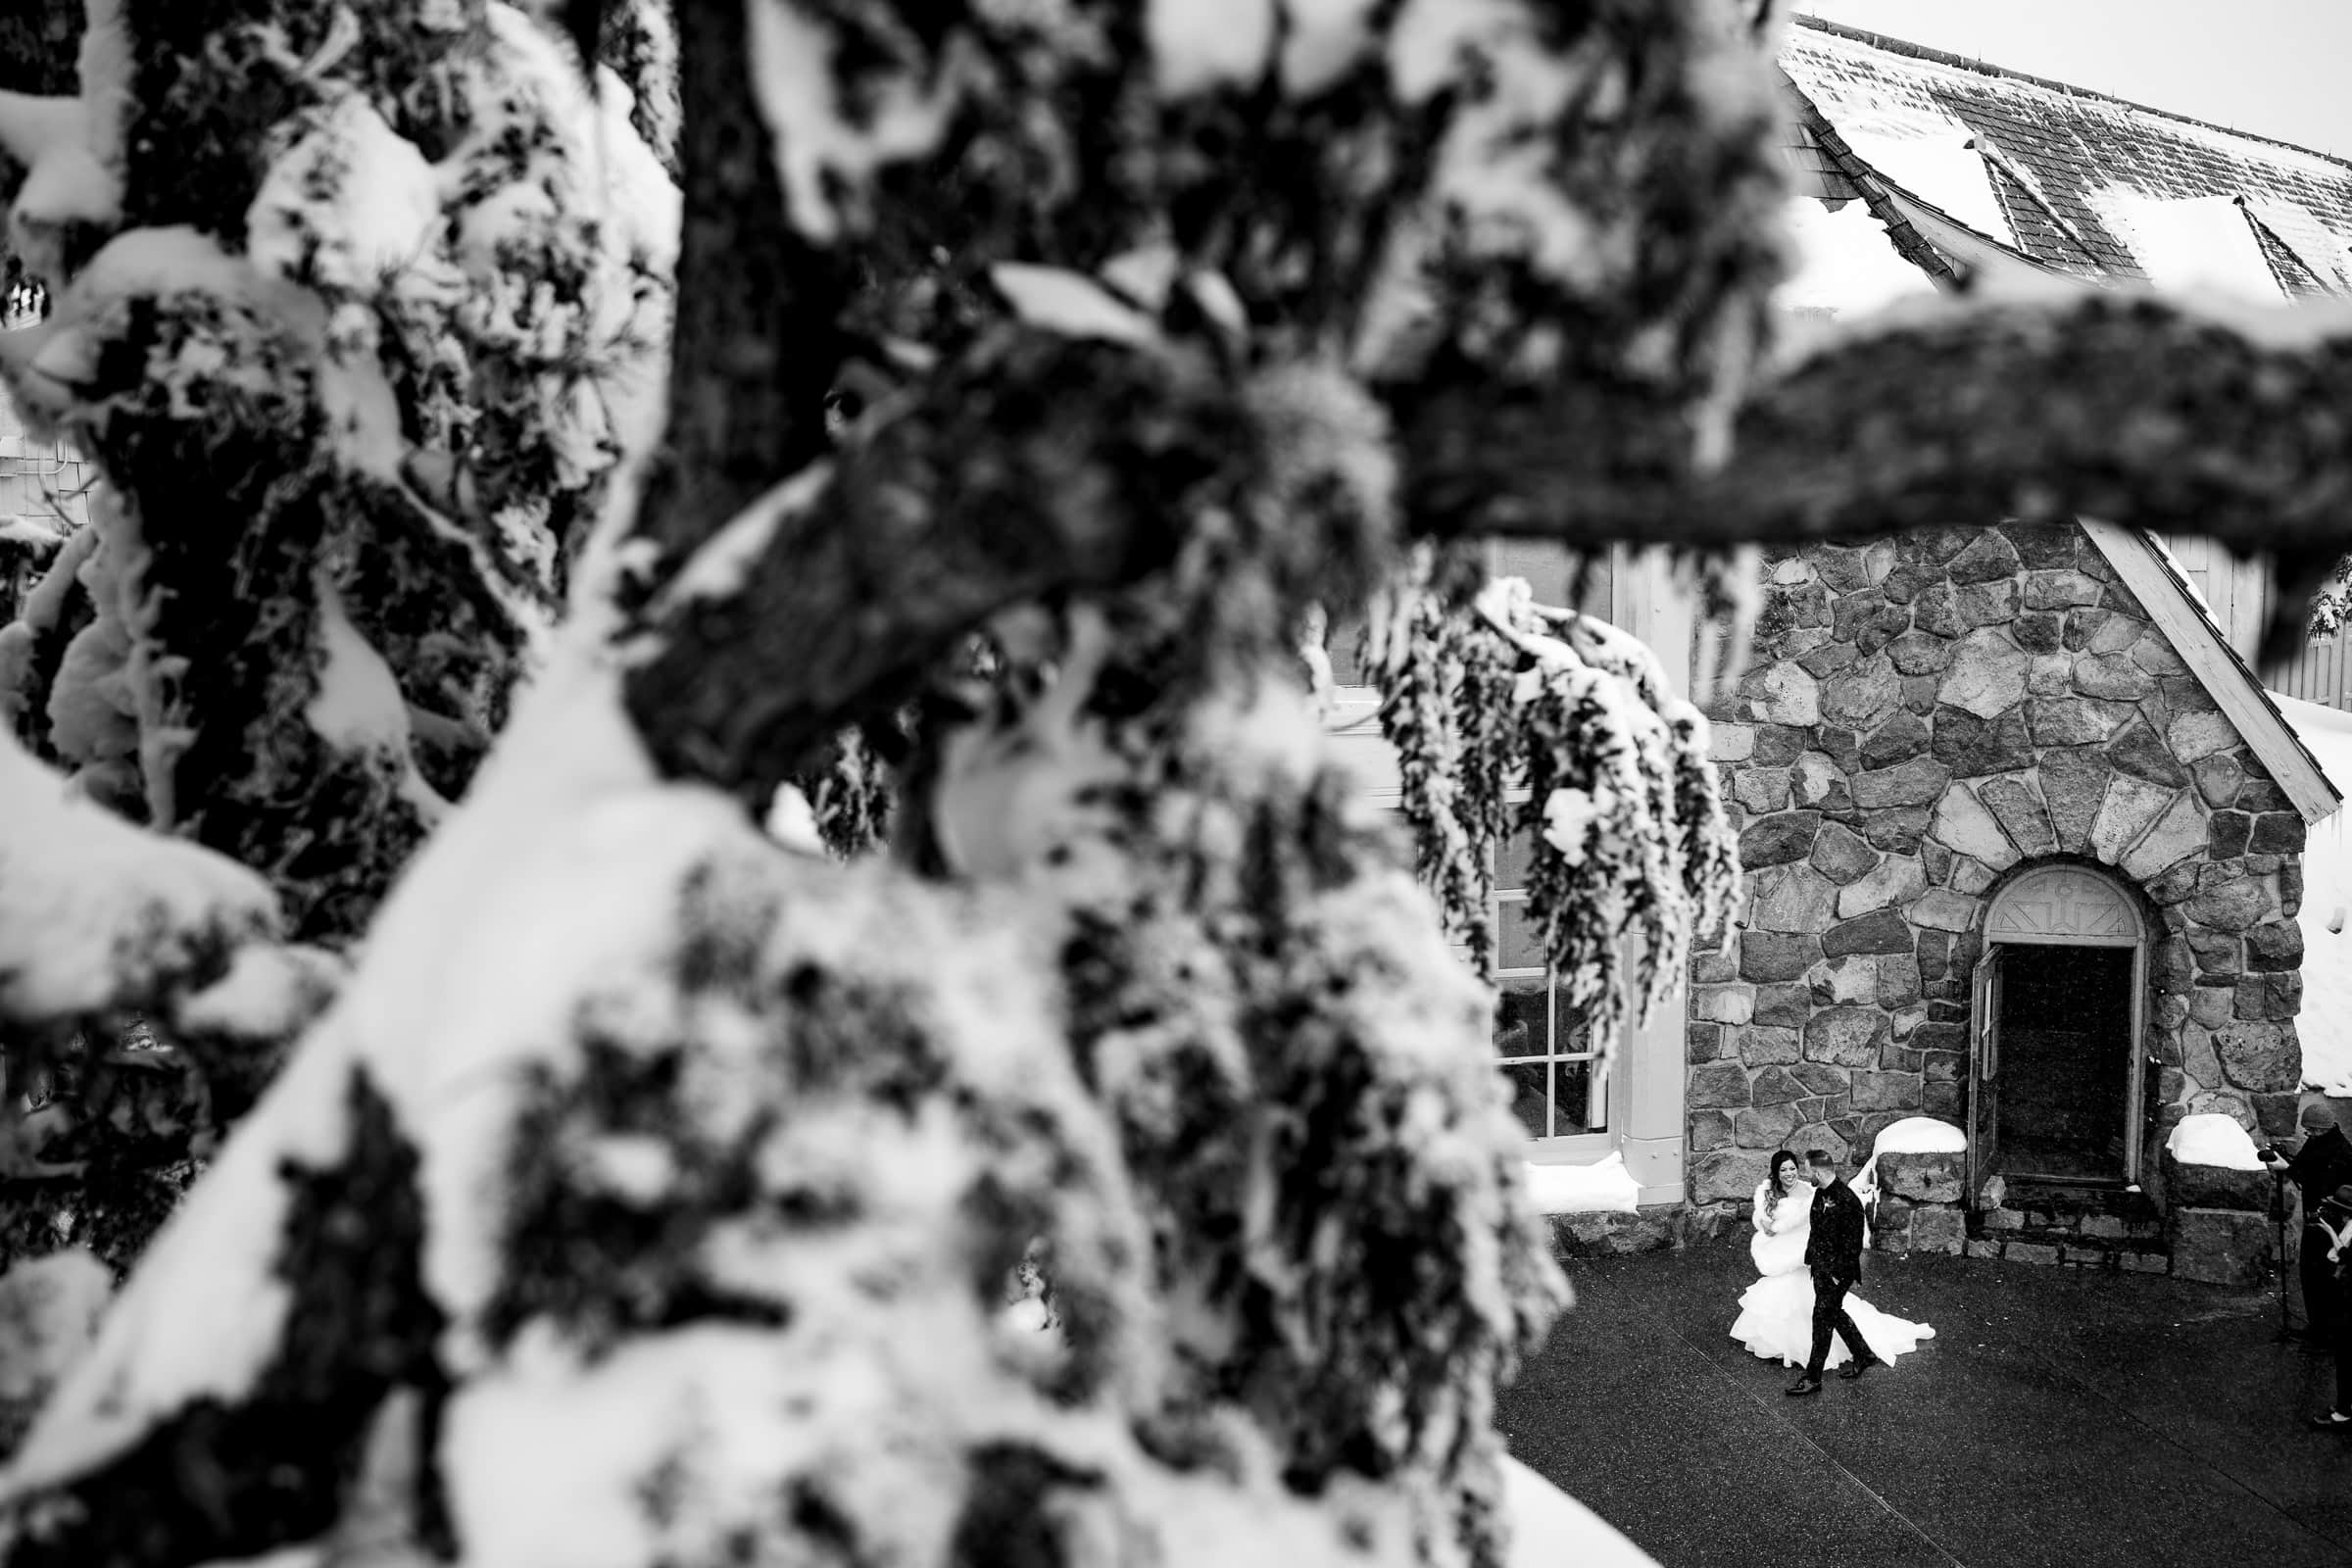 Bride and groom walking together in snow outside moments before their Timberline Lodge Wedding ceremony.